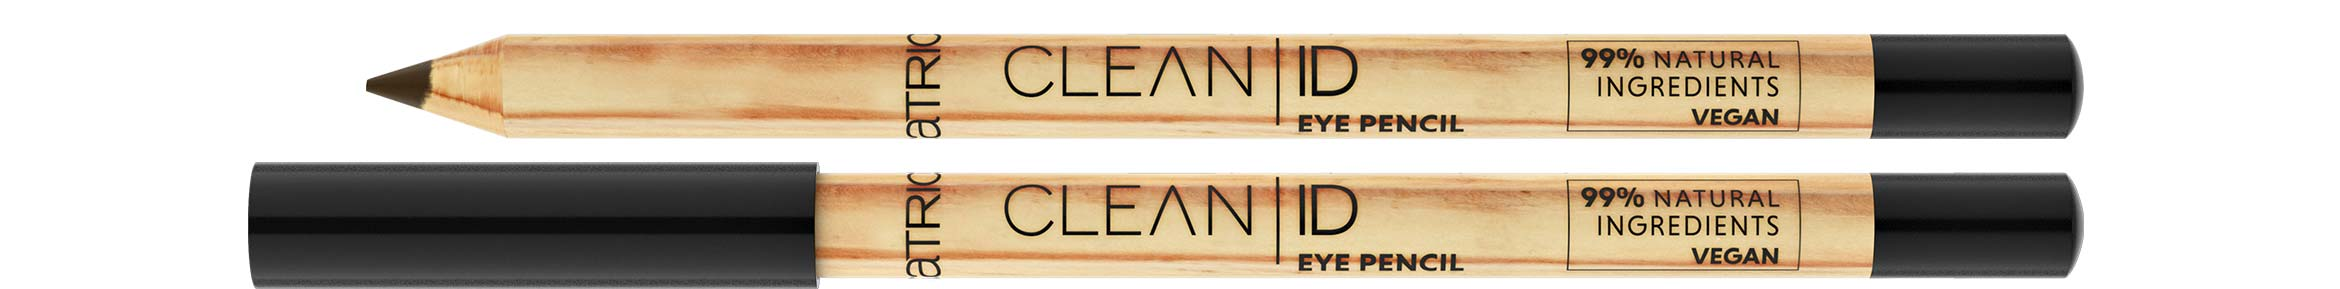 catrice clean id eye pencil - CATRICE ASSORTIMENTSUPDATE LENTE/ ZOMER 2020